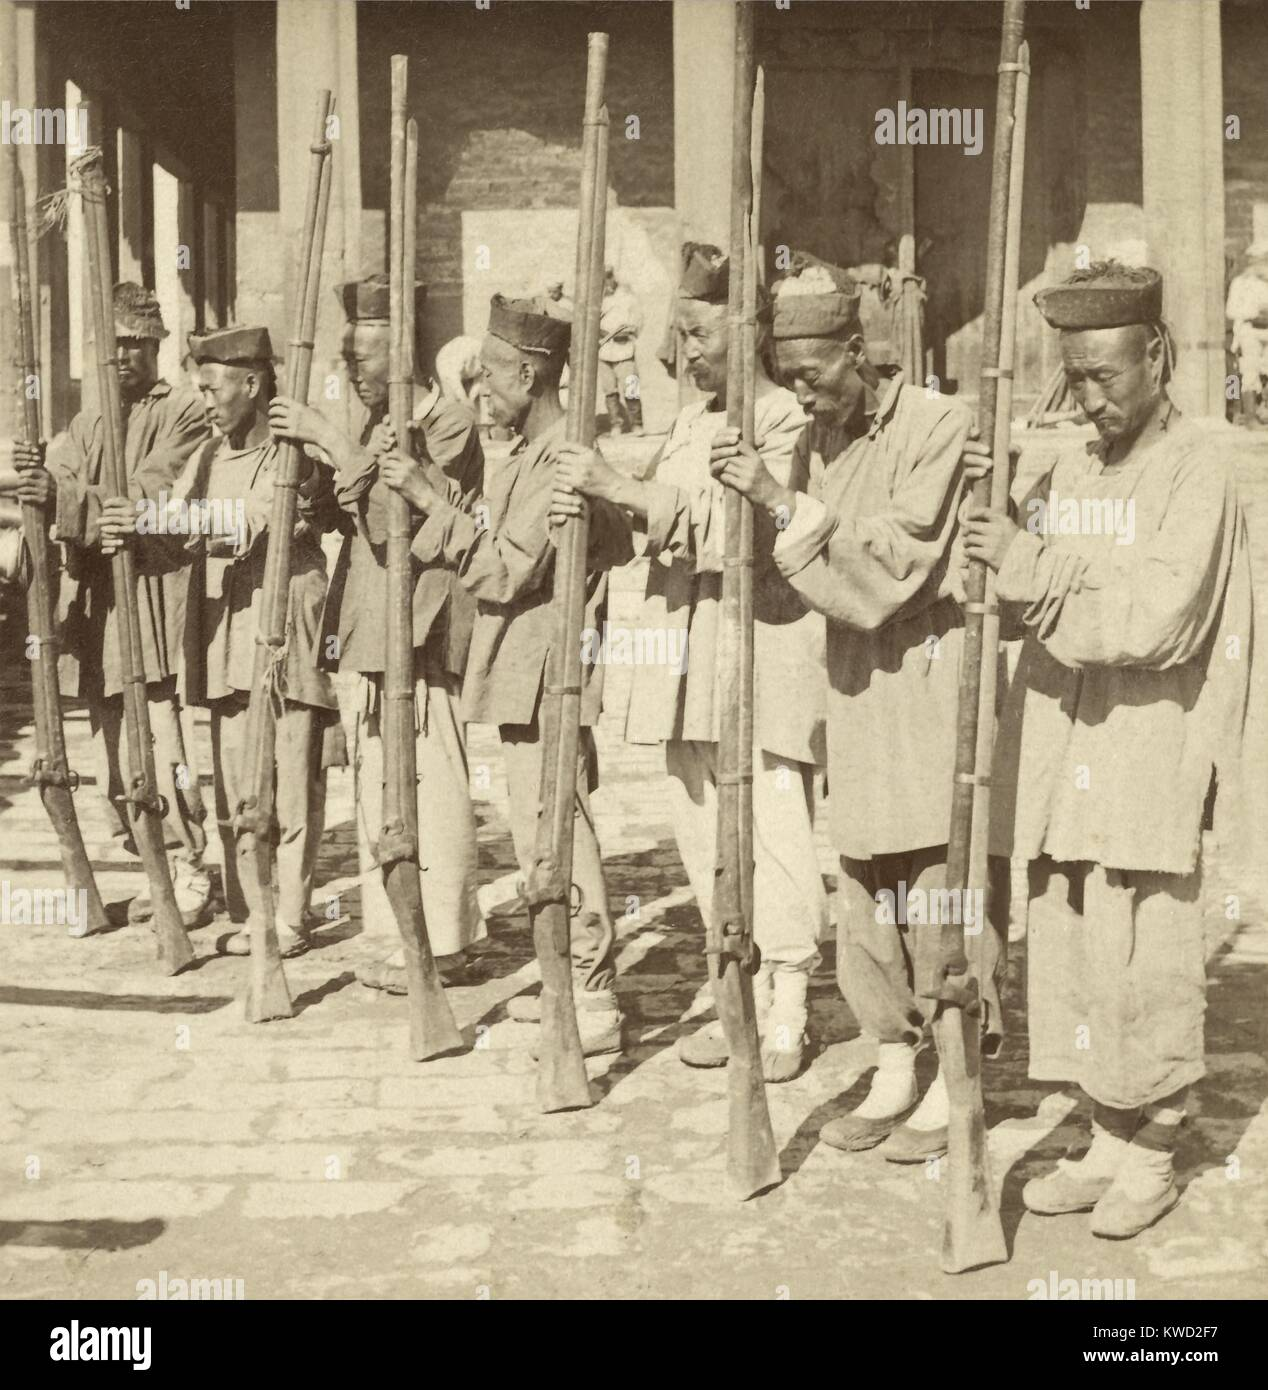 In Tianjin (Tientsin), China, Boxer rebel soldiers were armed with antique guns, June-July 1900. The regular Chinese - Stock Image